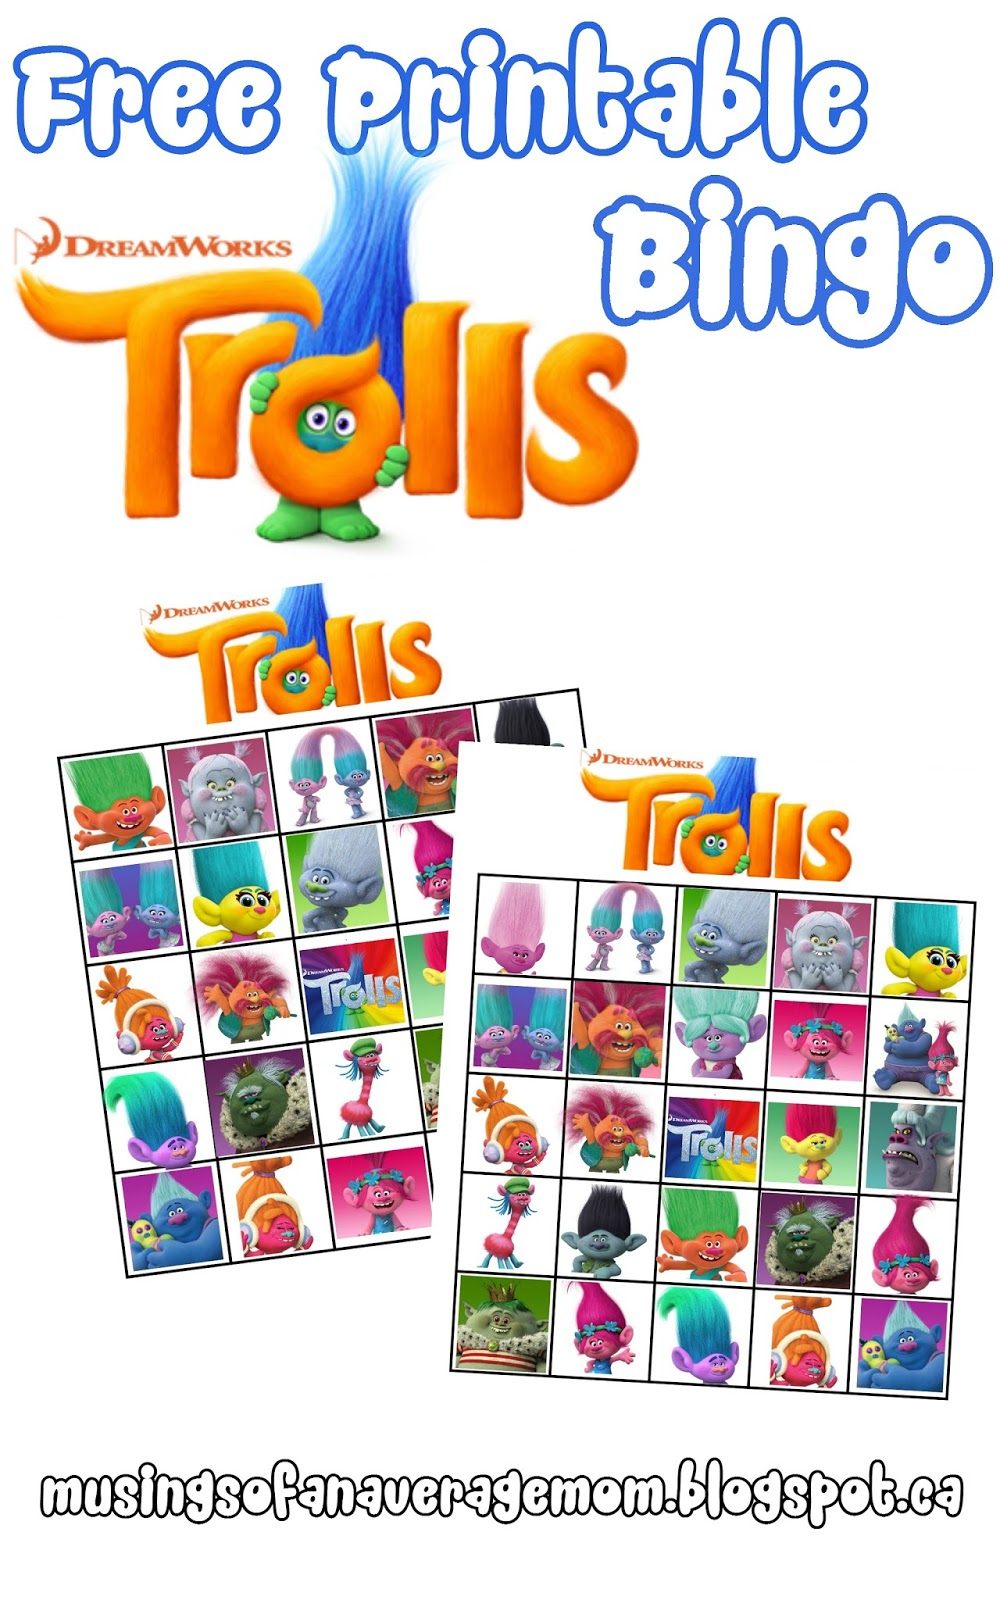 Musings Of An Average Mom: Free Printable Trolls Movie Bingo - Free Printable Trolls